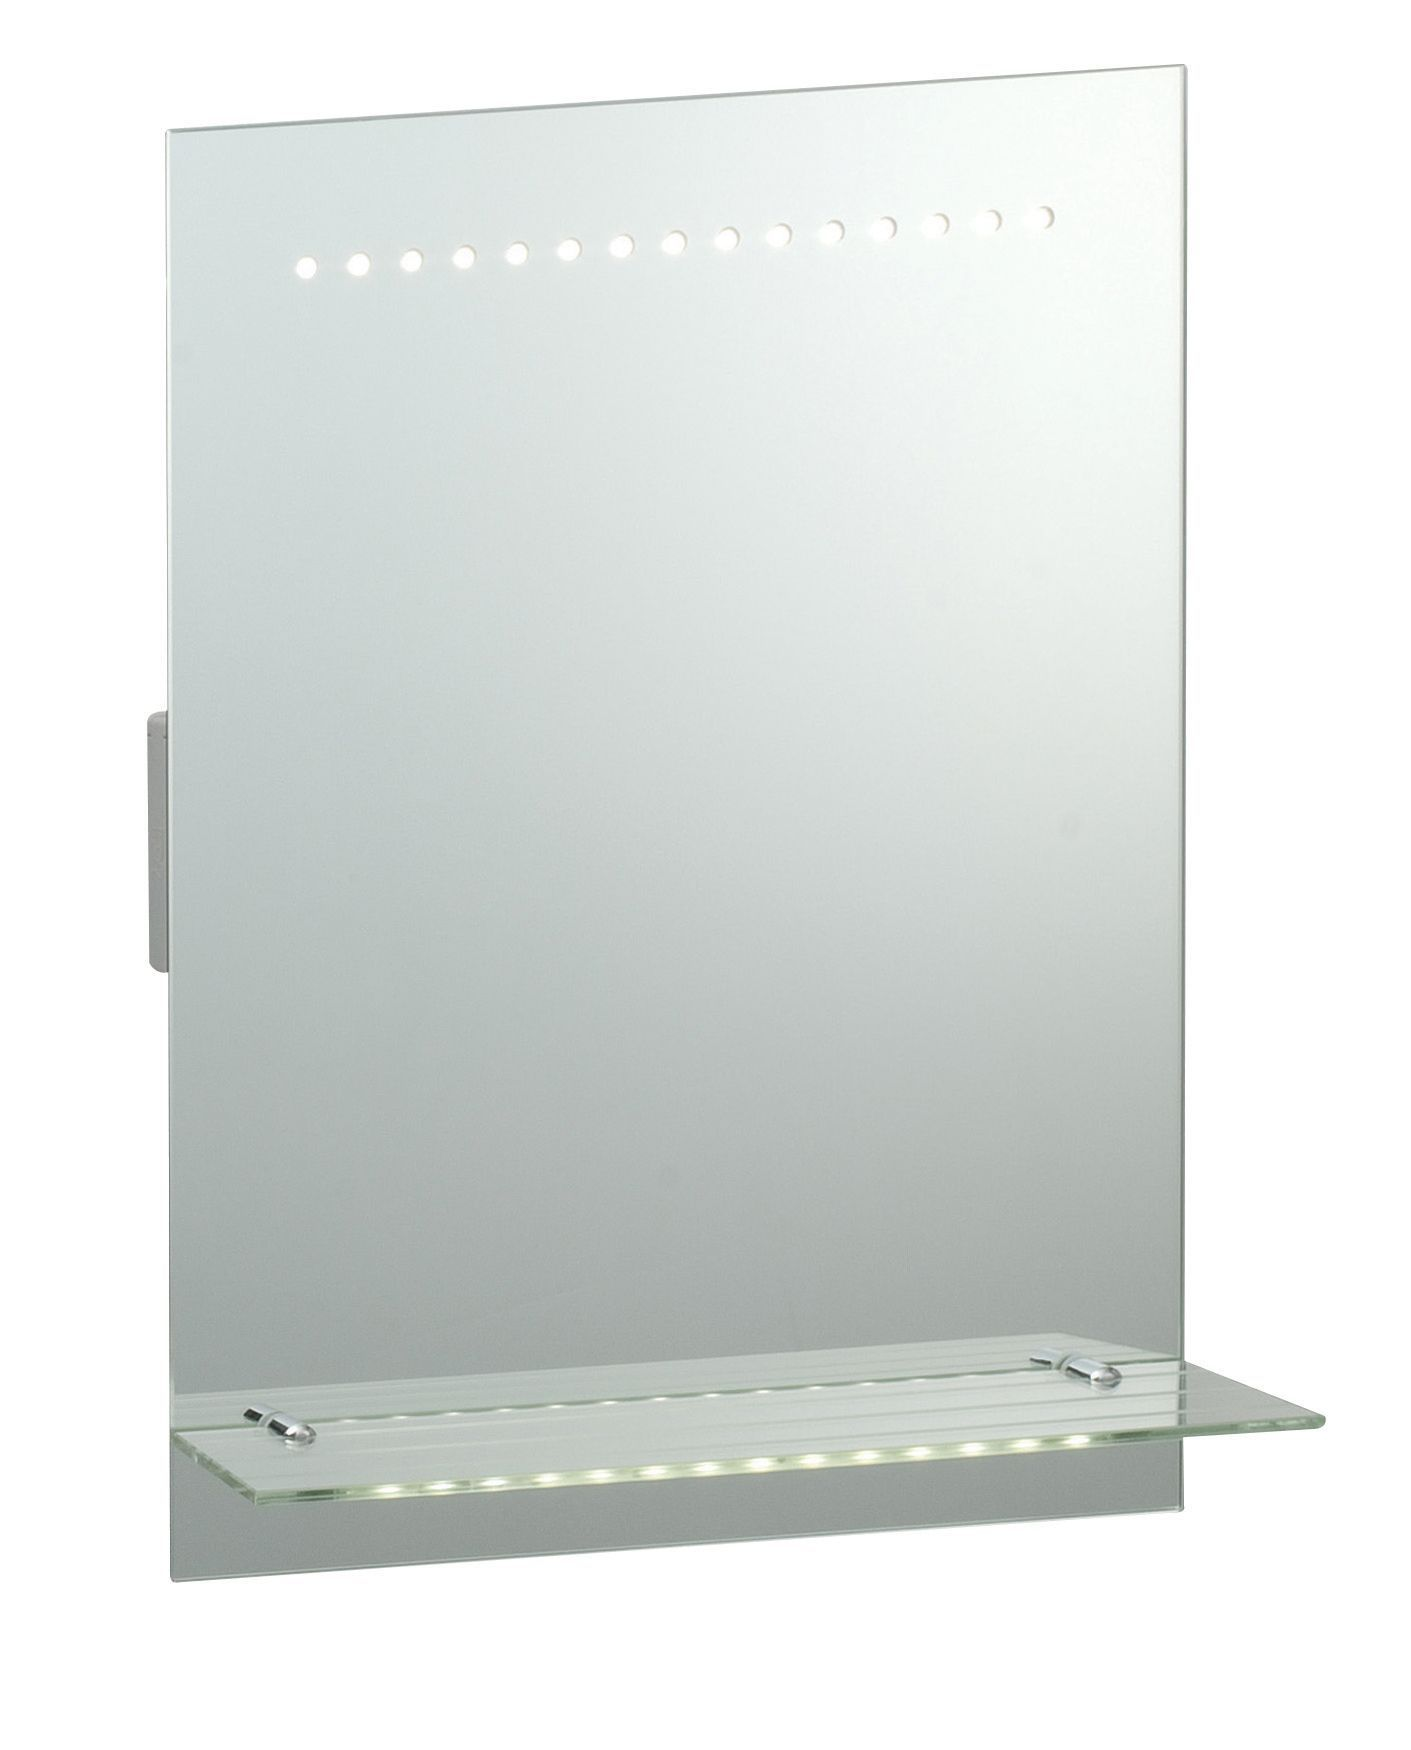 Bathroom shaver socket bathroom cabinet with mirror and light and latest led mirrored glass u matt silver effect paint ip bathroom mirror light shaver socket with bathroom shaver socket aloadofball Image collections